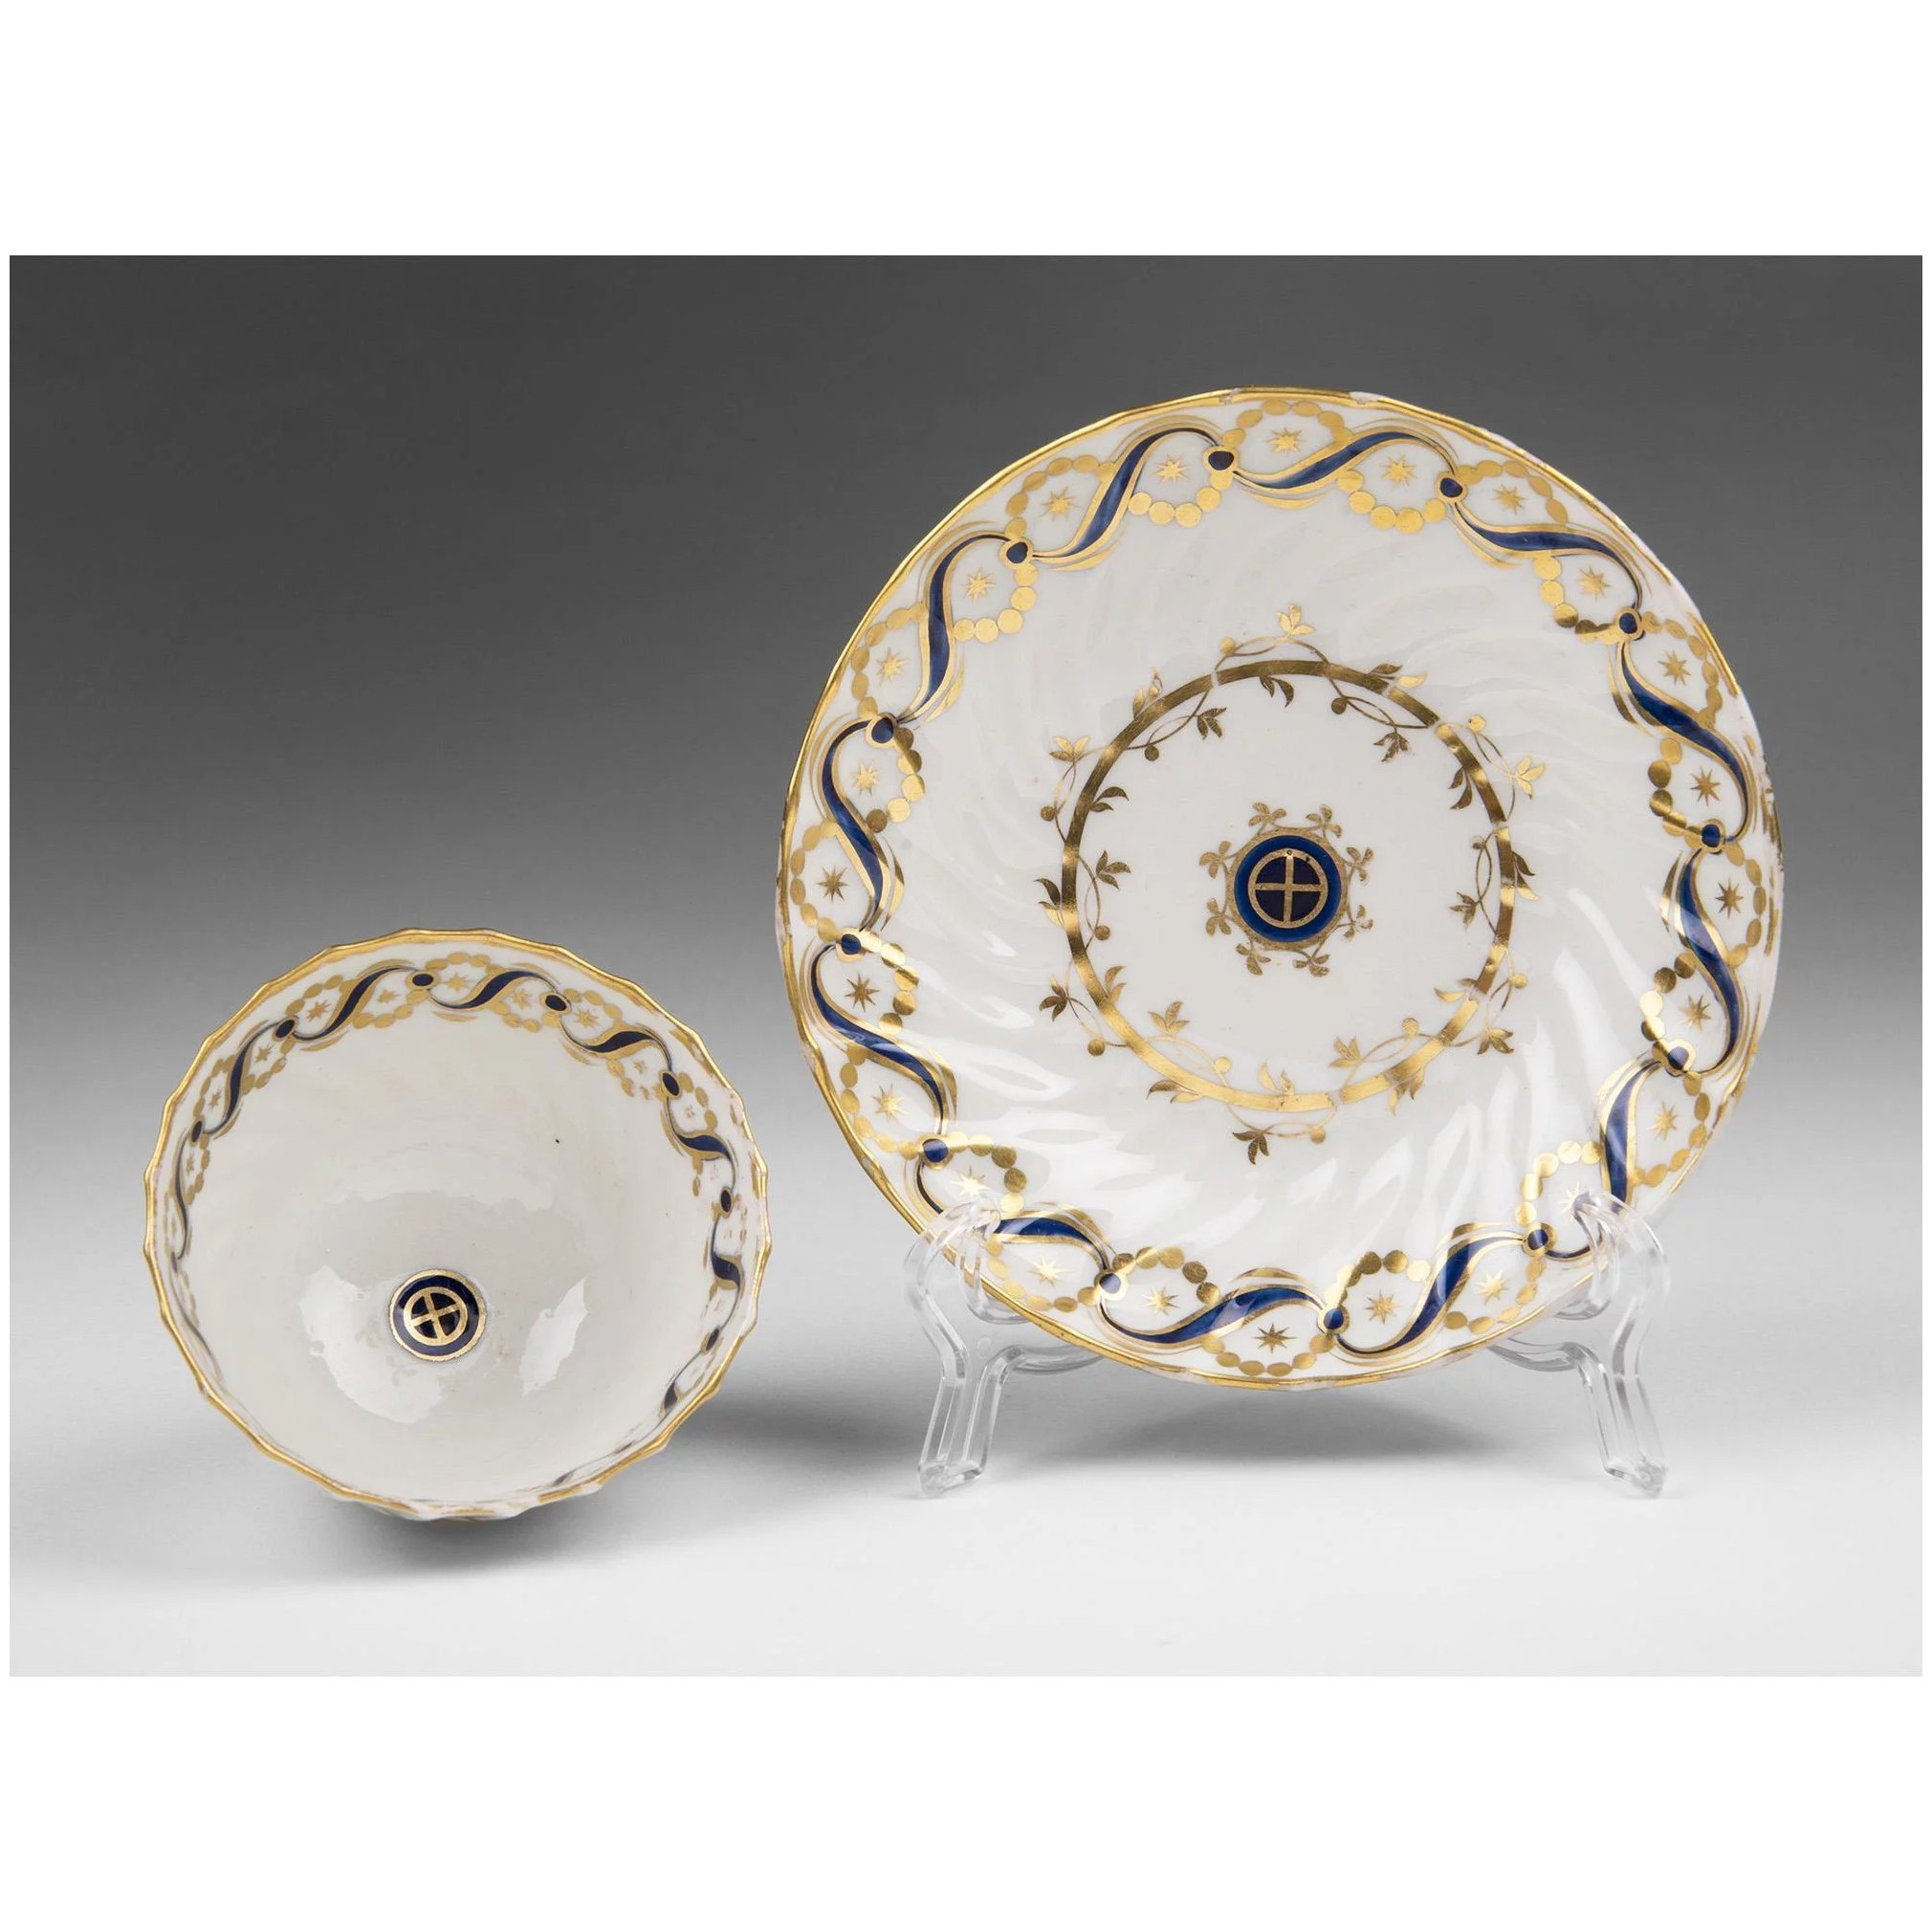 6th C. English Soft Paste Porcelain Tea Bowl and Saucer, Attributed To  Caughley